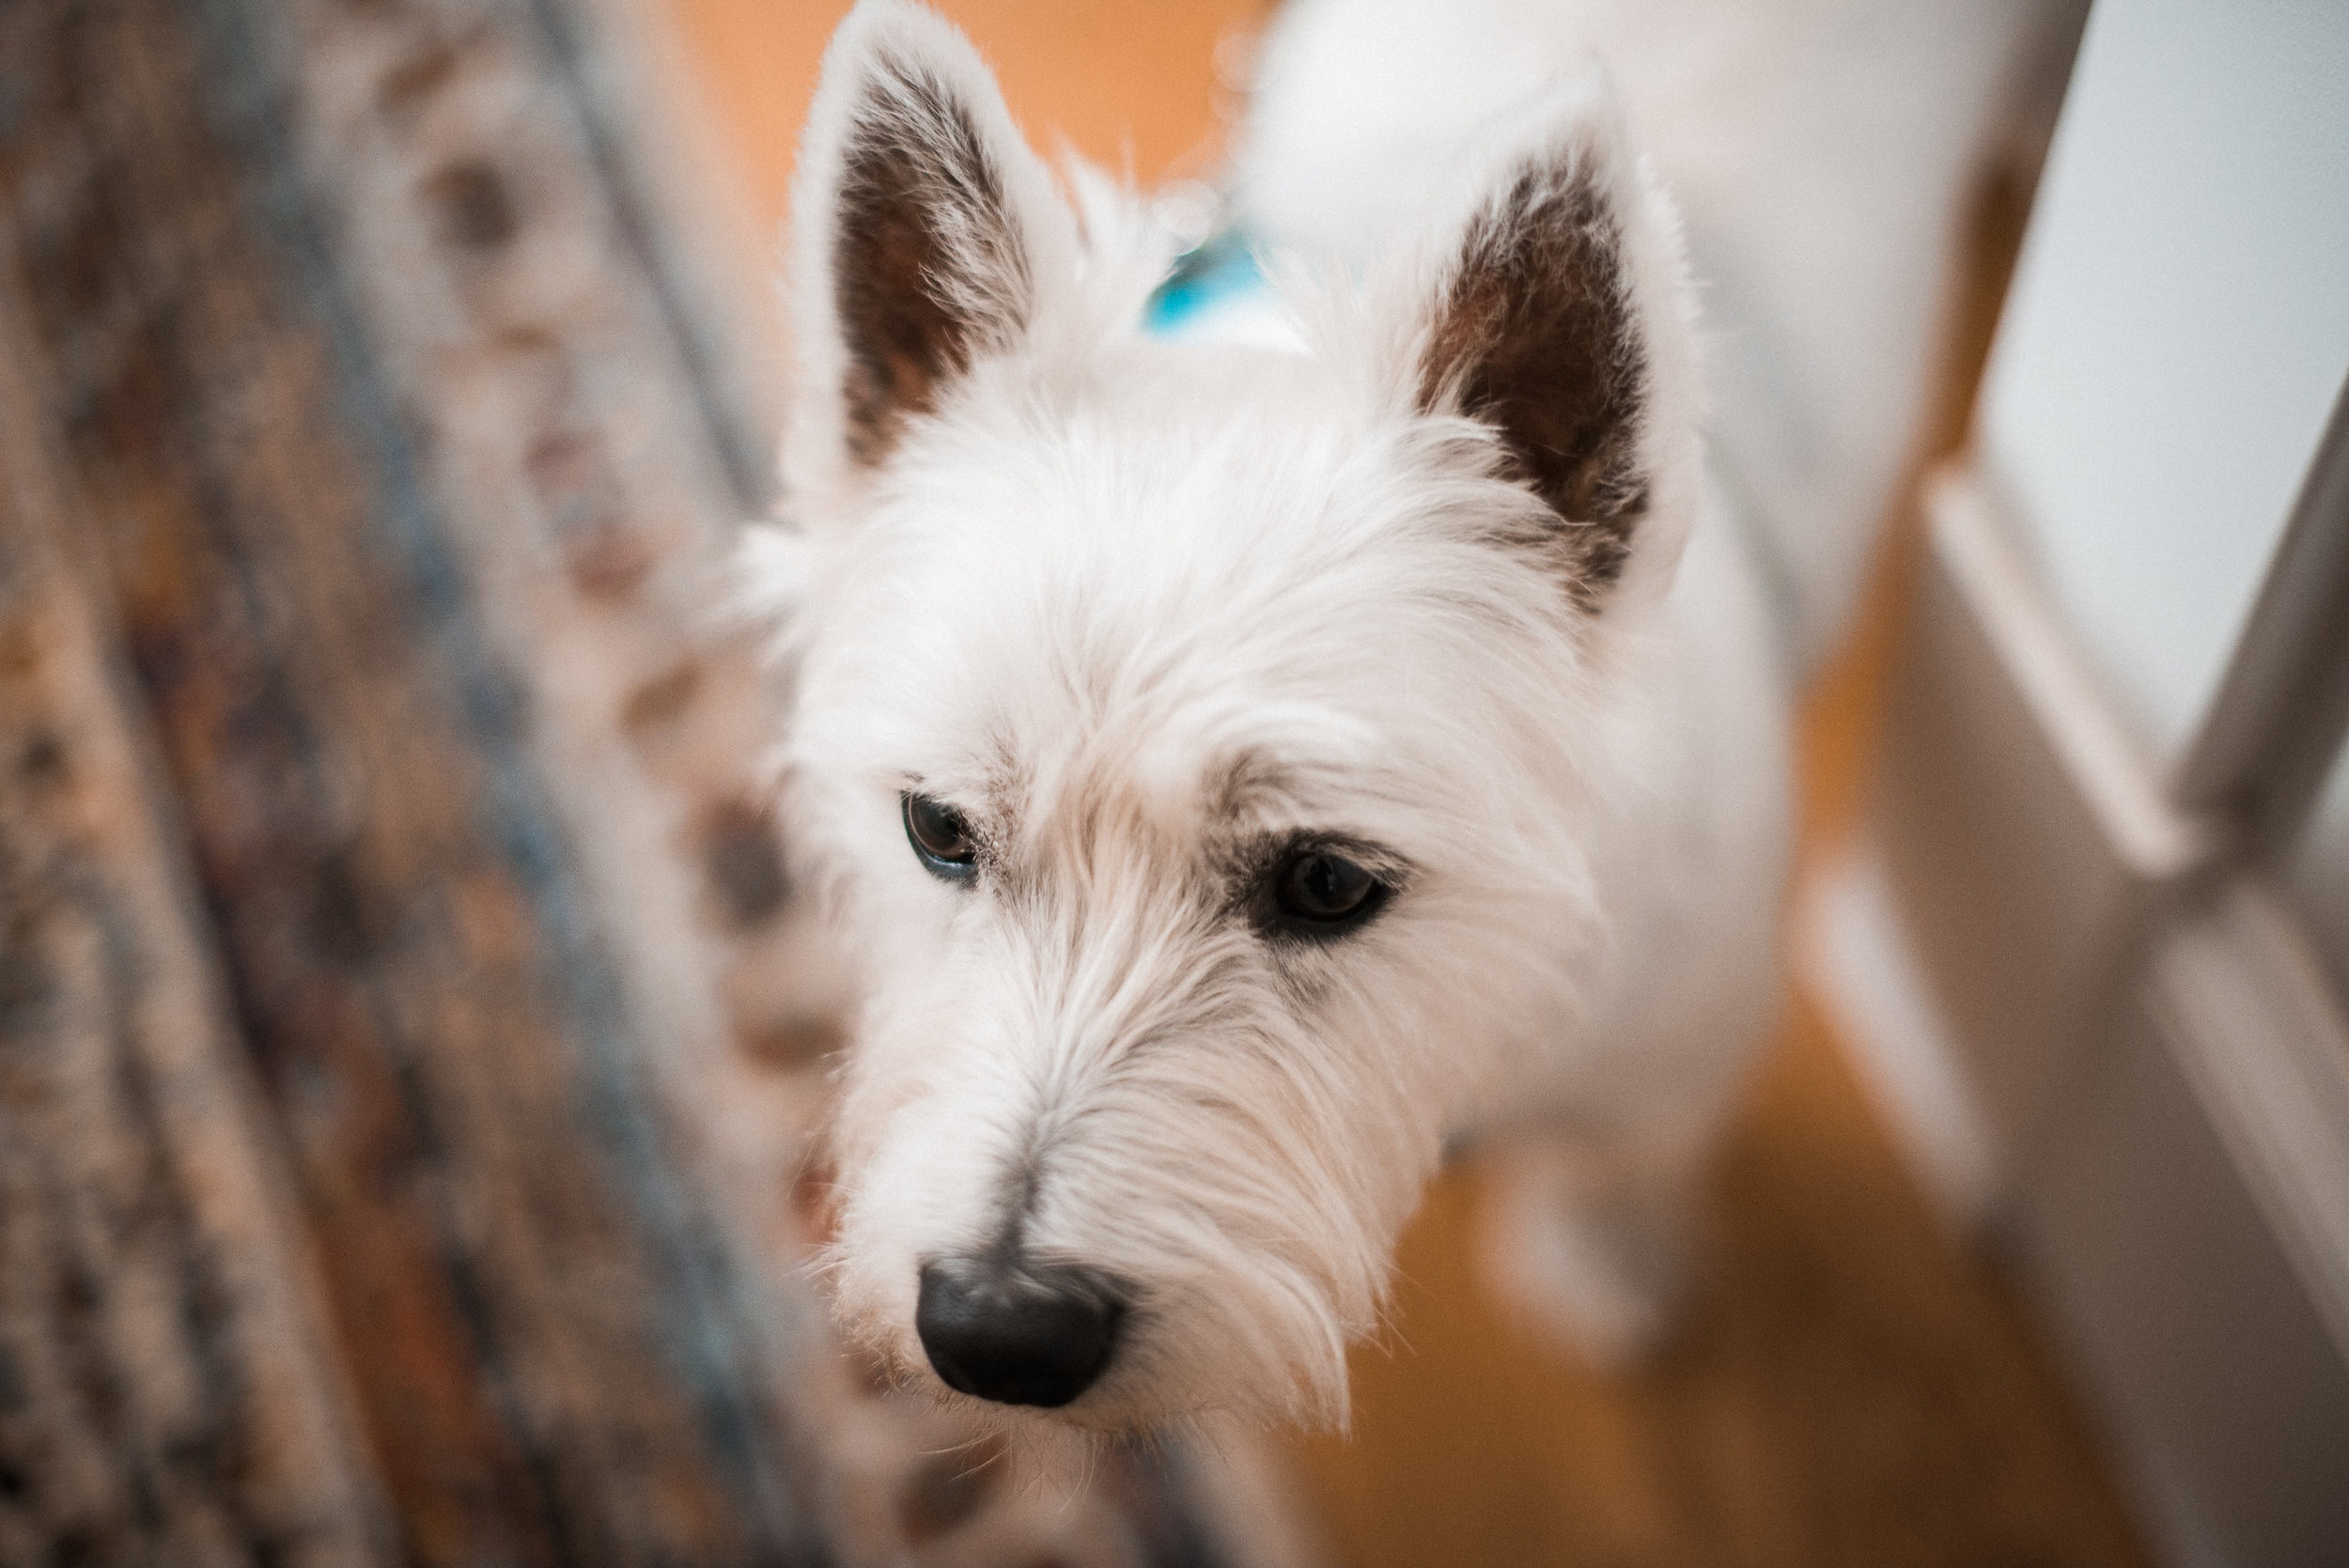 Small white dog at door